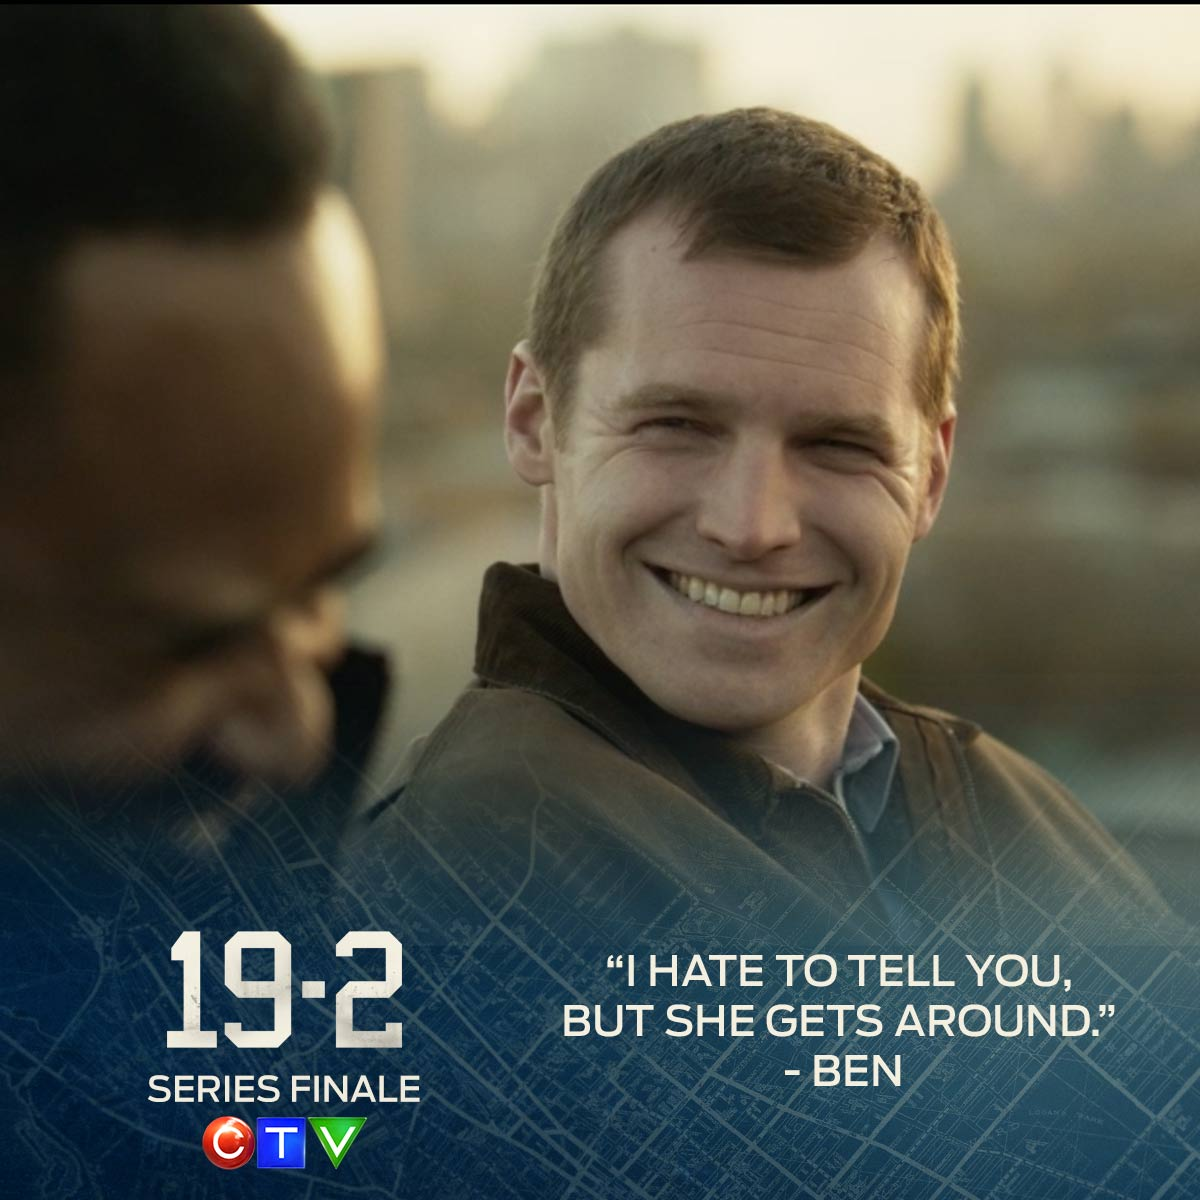 It's been four years. Ben should know. #19two https://t.co/1aR2Lo3BPG